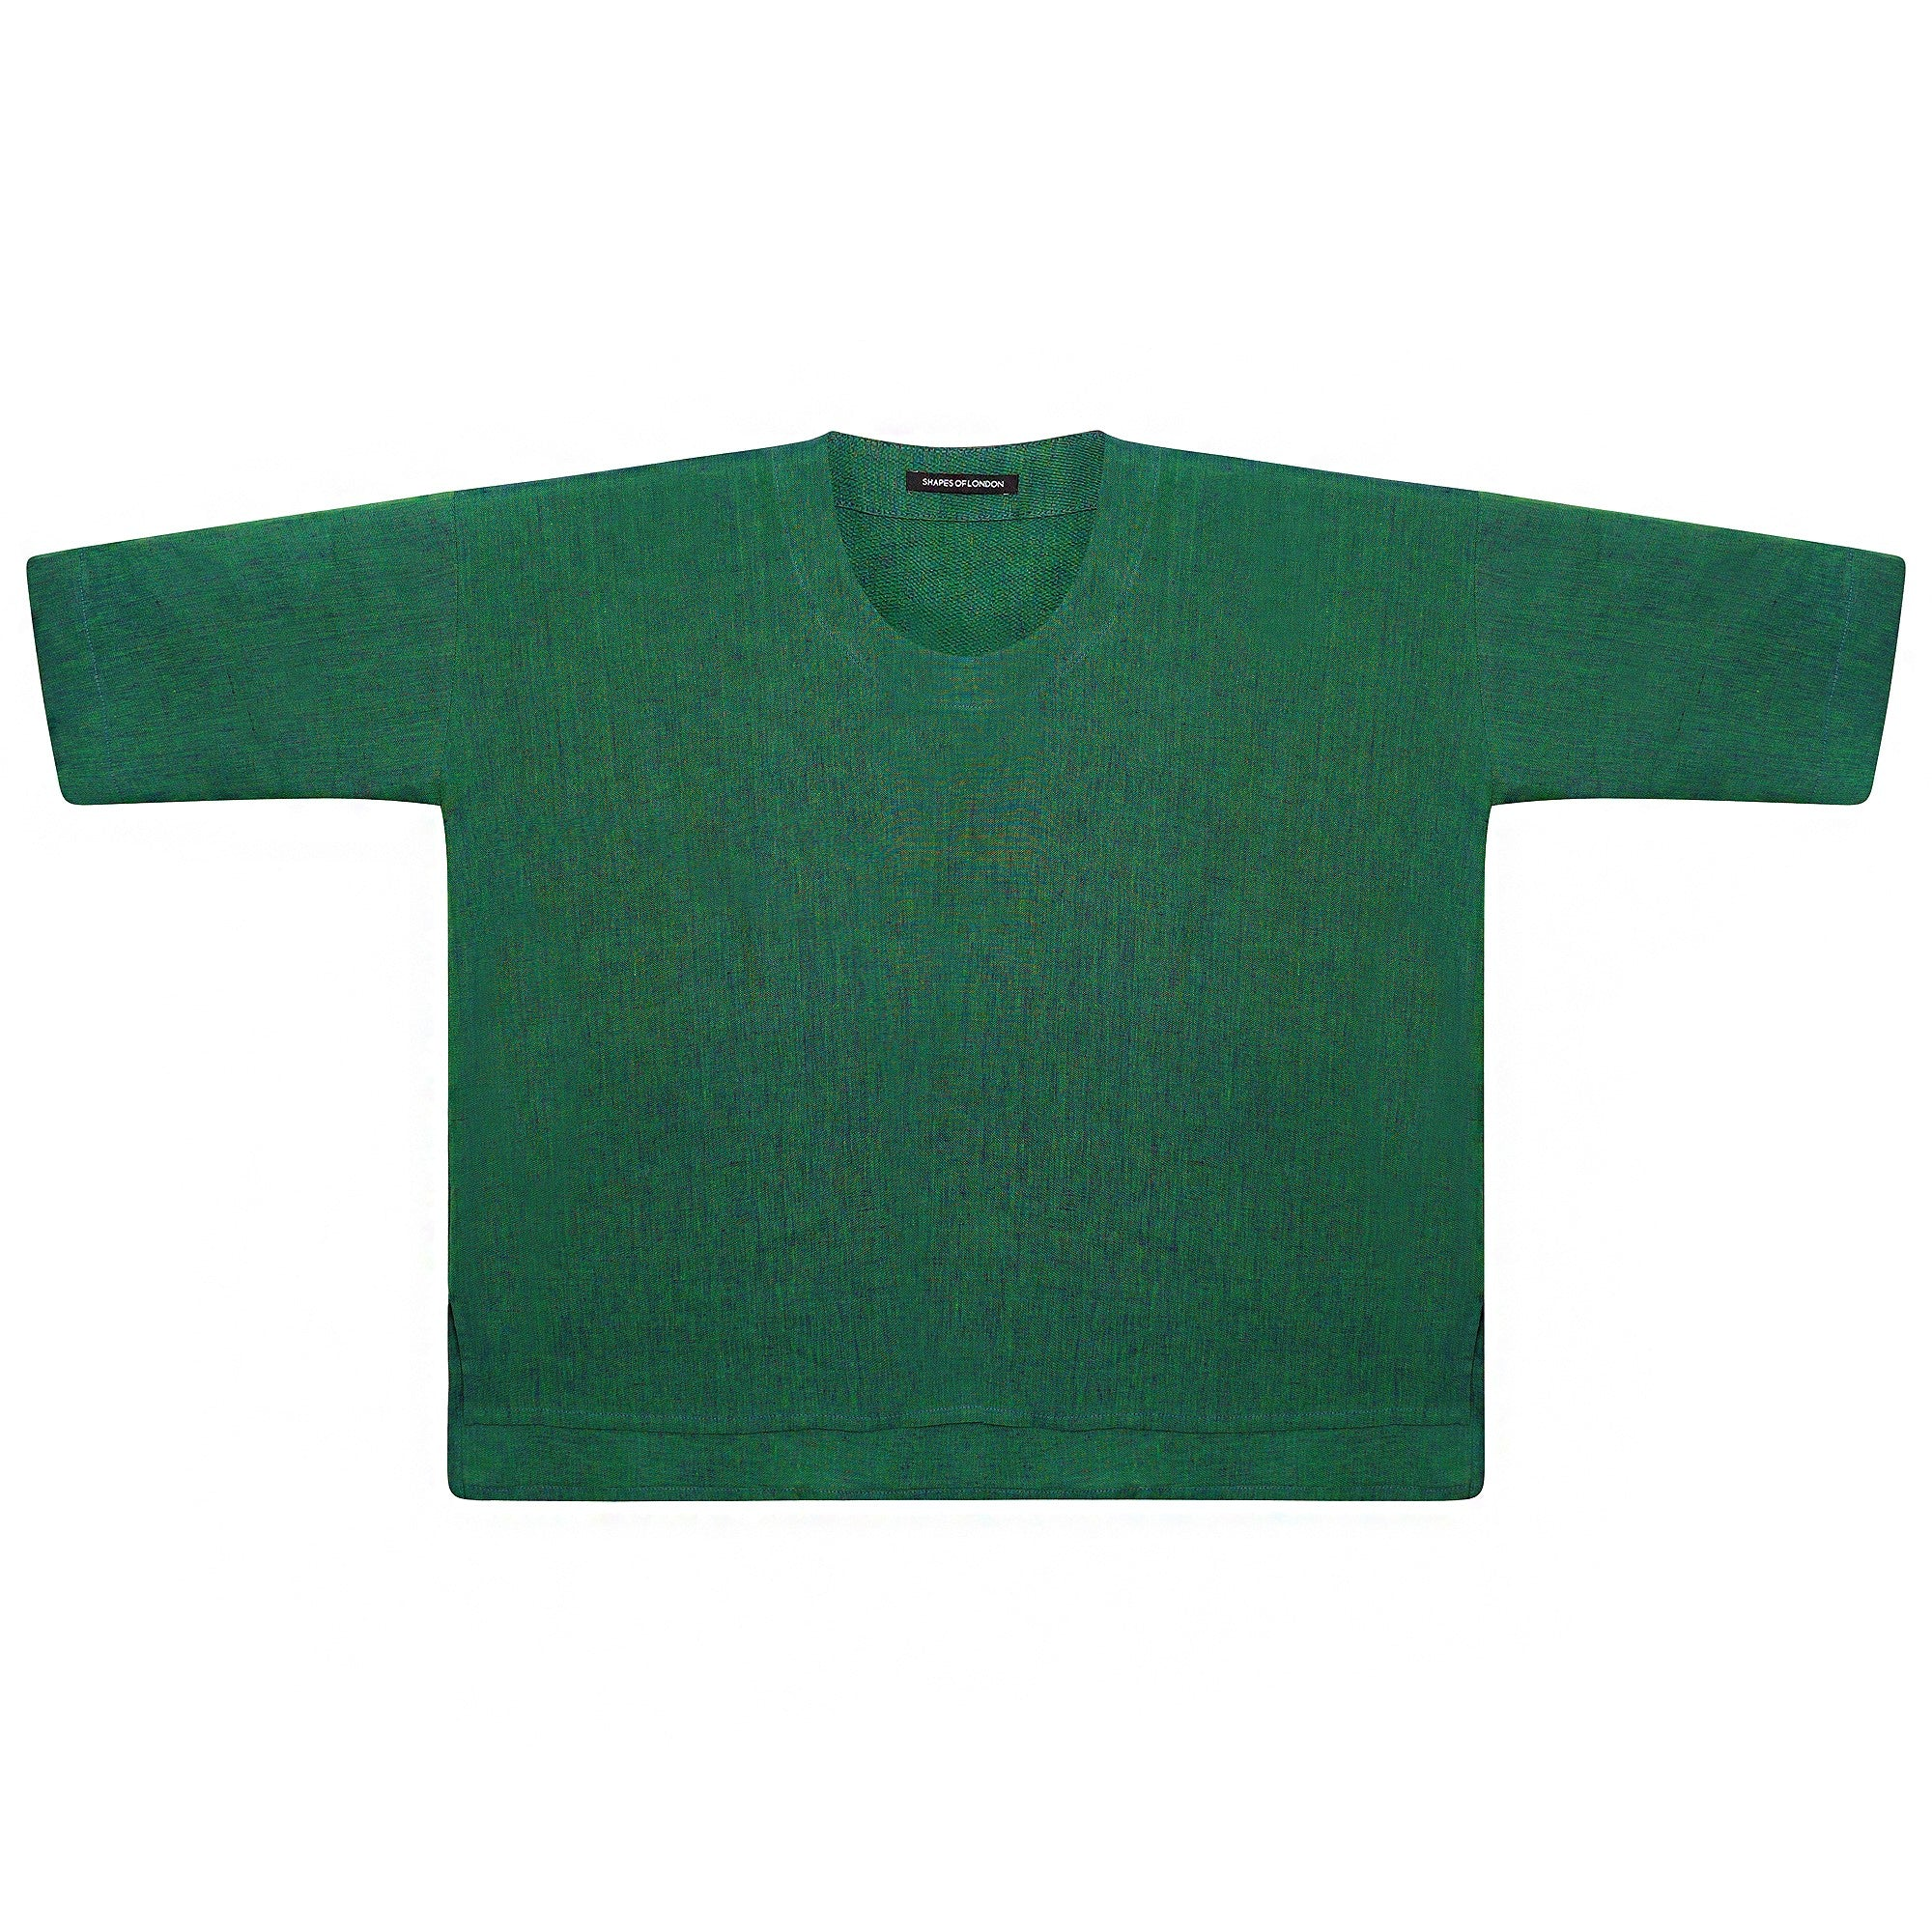 IRISH LINEN EMERALD GREEN BLOUSE